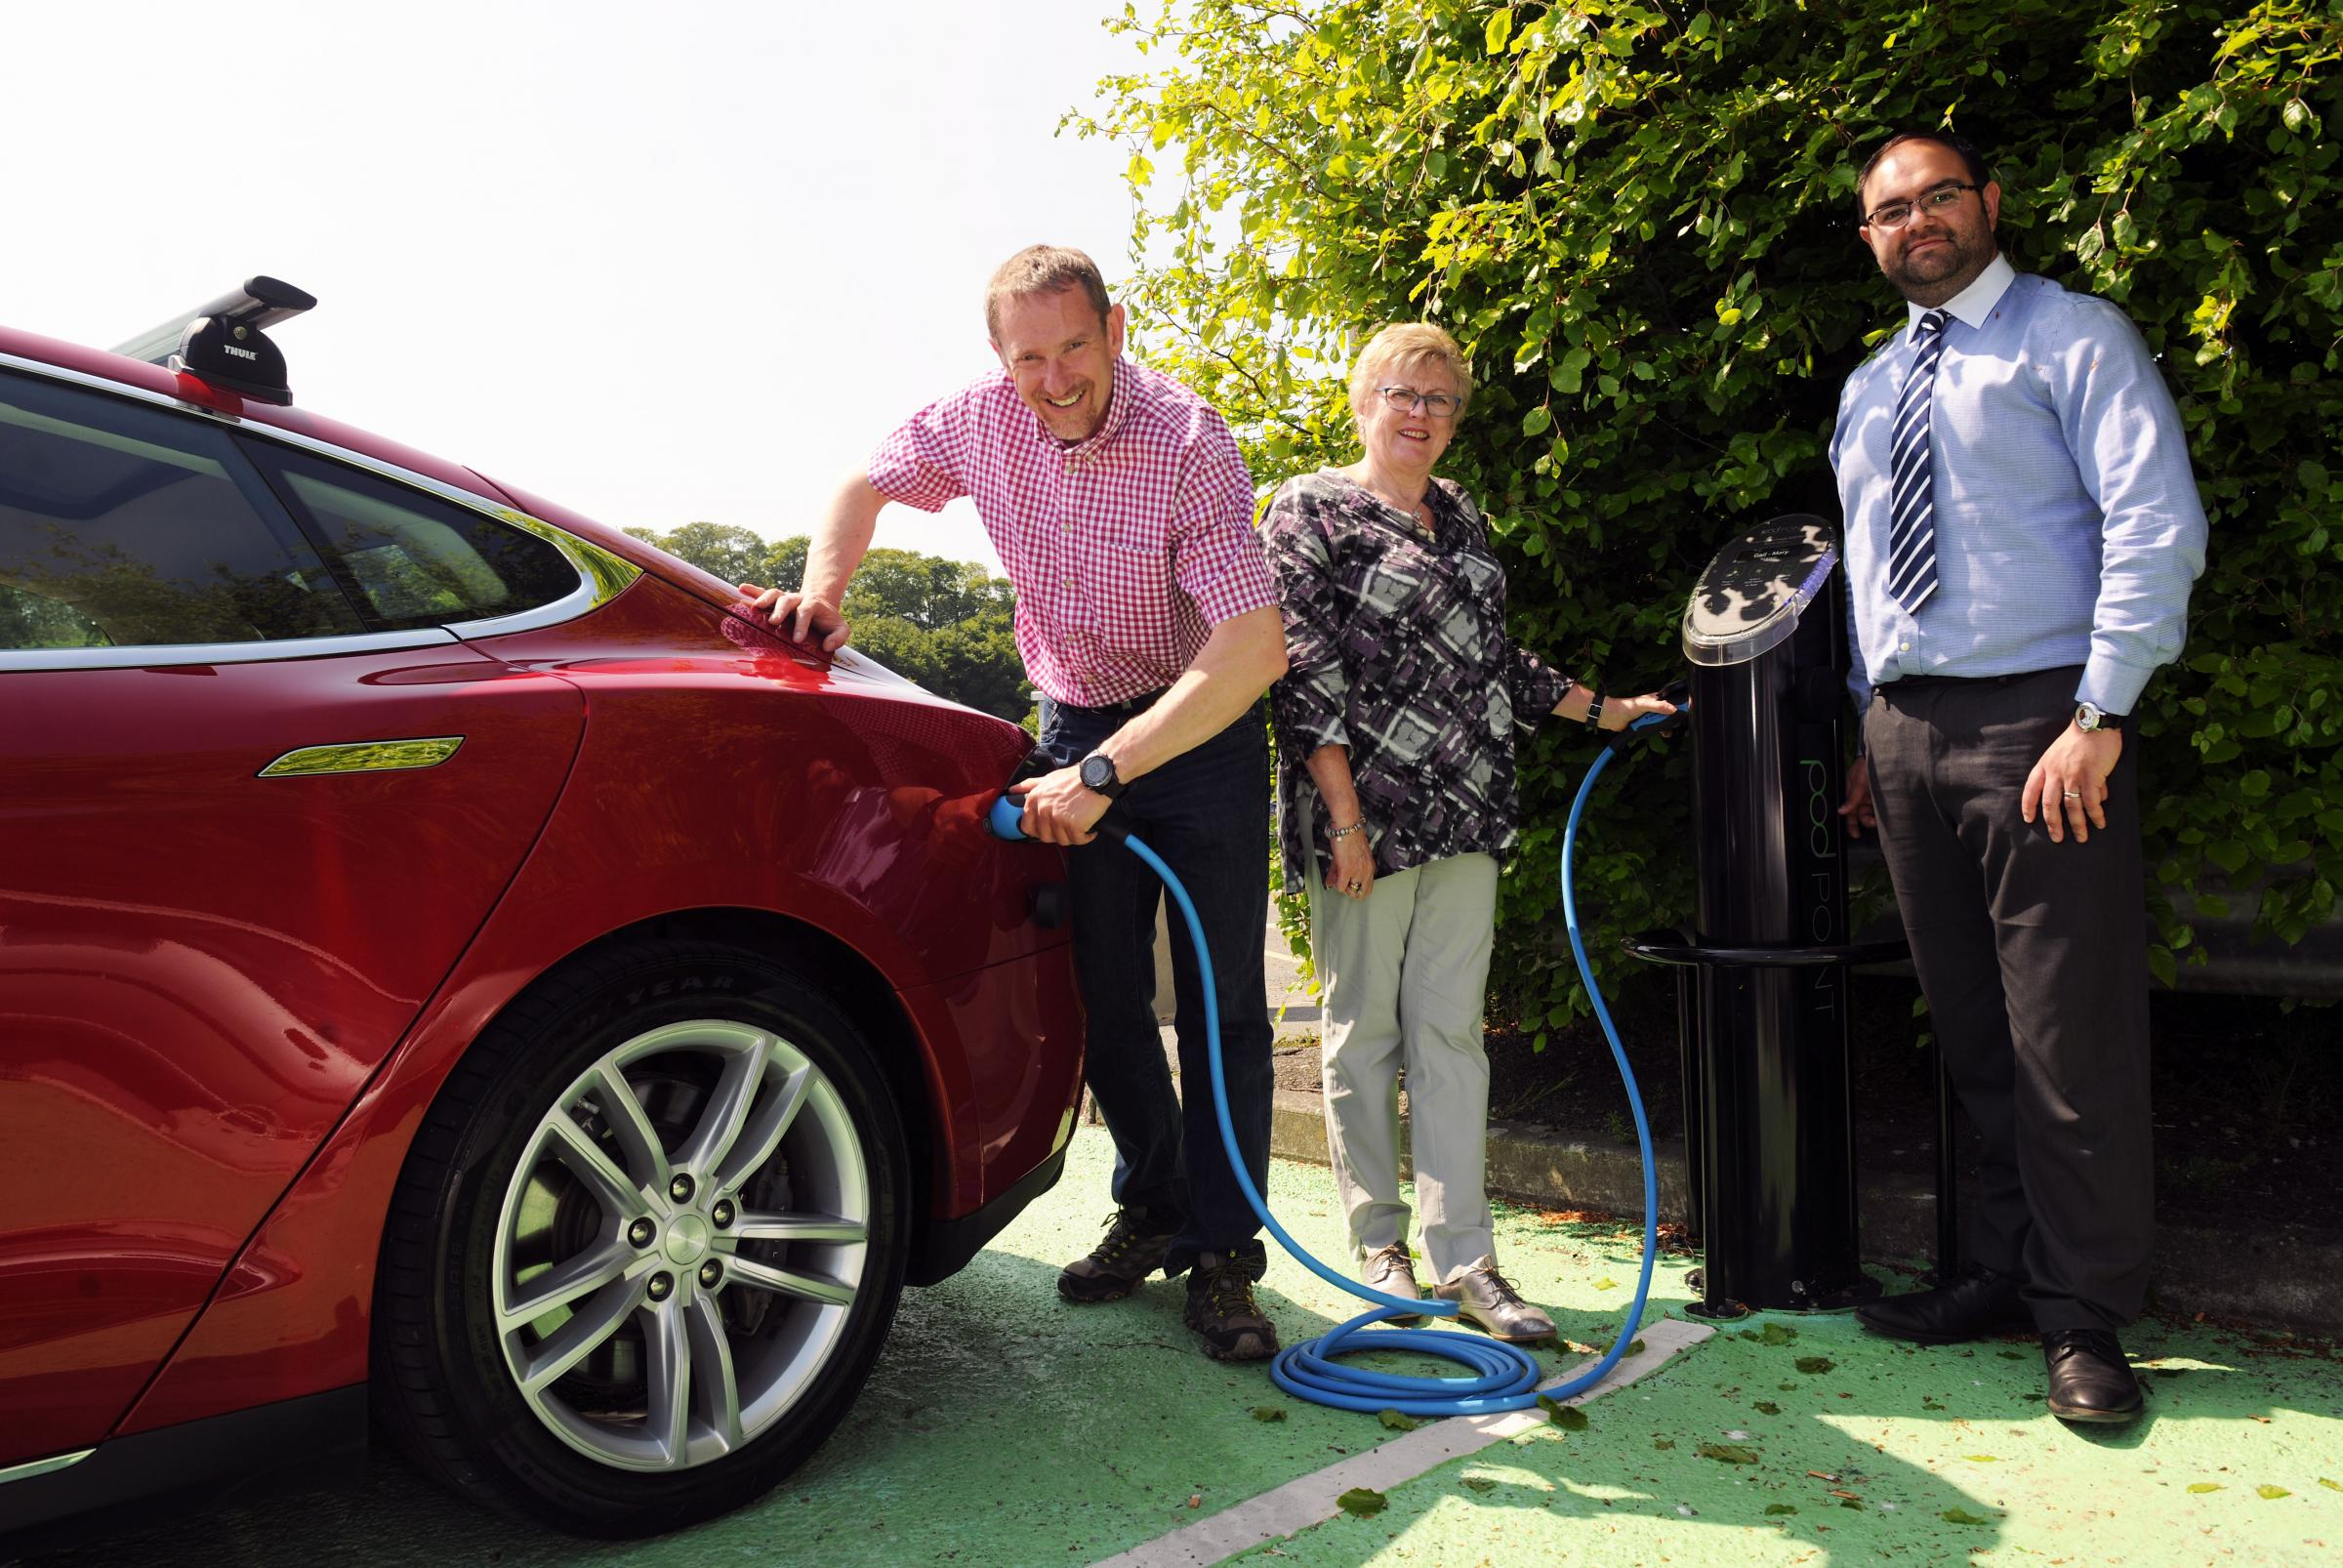 Free of charge: William Silverstone (member of the public) charging his car, Cllr Hazel Evans and Thomas Evans, transport planner at the new electric car charging points at Newcastle Emlyn